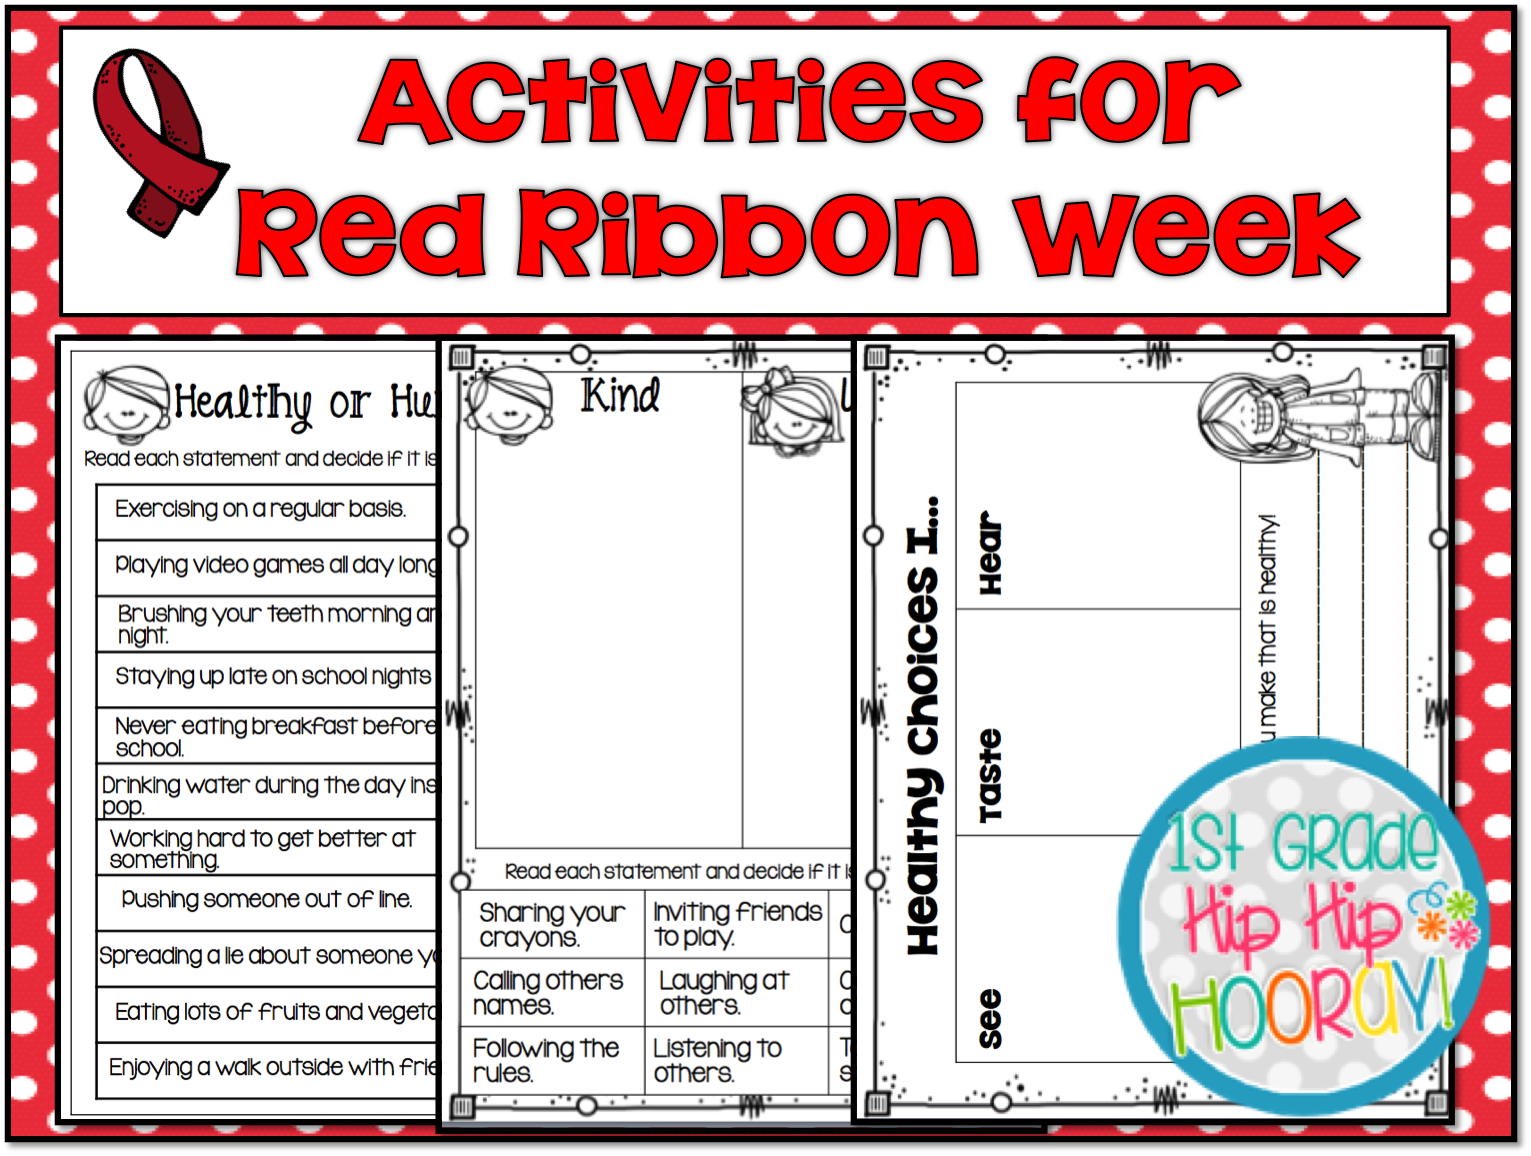 image about Red Ribbon Week Printable Activities referred to as 1st Quality Hip Hip Hooray!: Merely SAY NO! Pink Ribbon 7 days